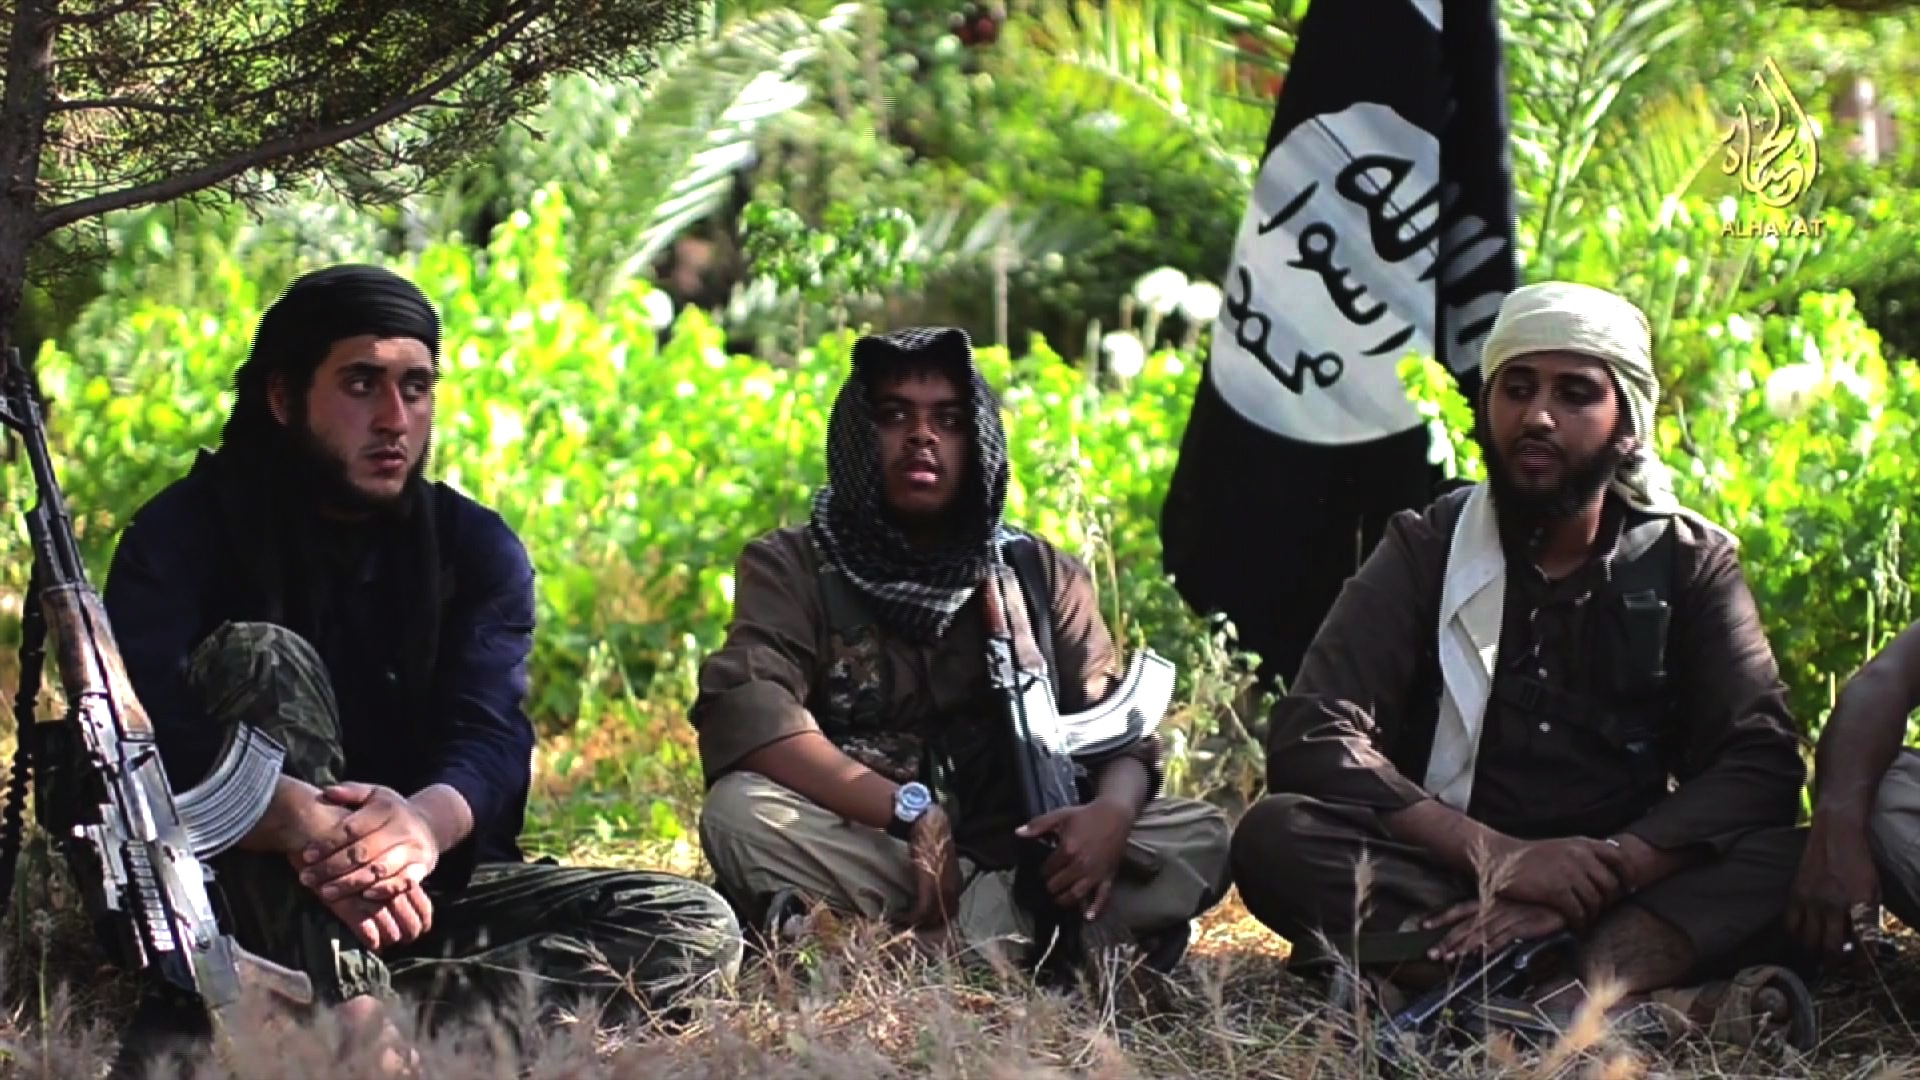 ISIS describe in detail why the HATE western culture and